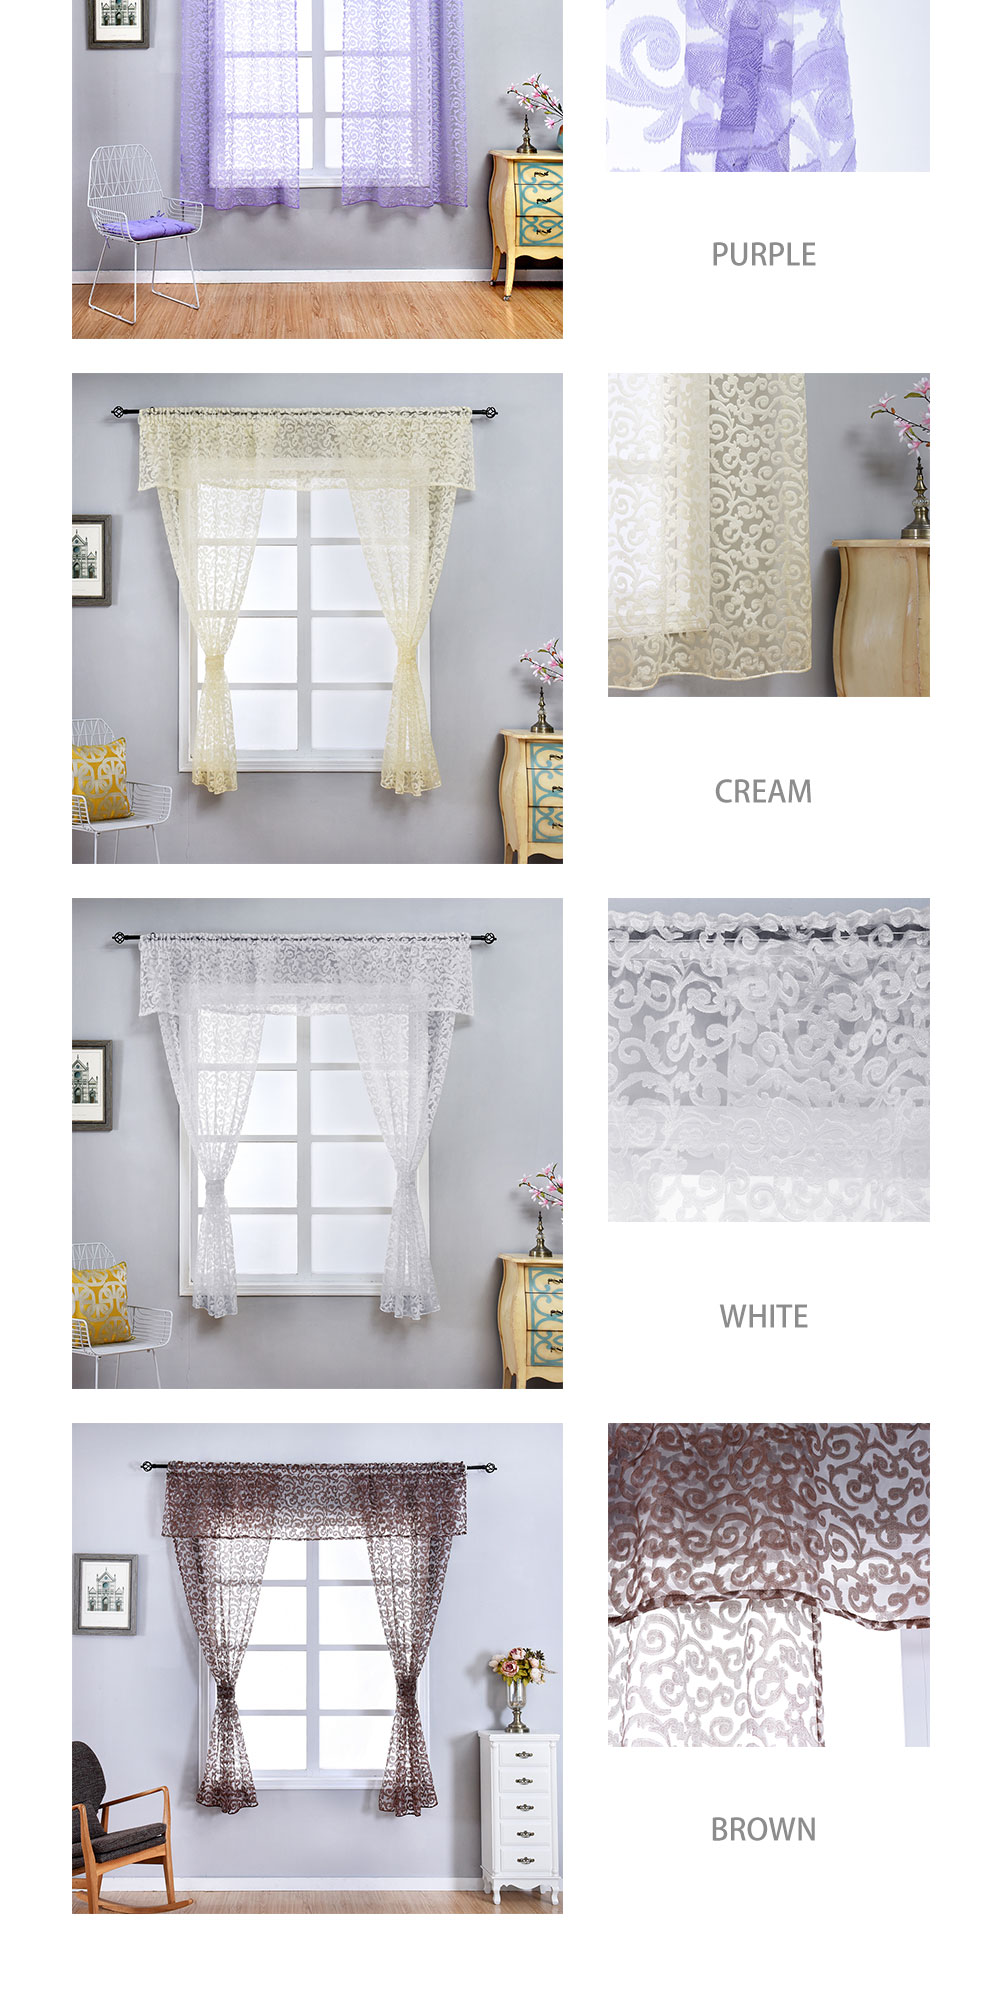 AOL-Smt293 NAPEARL Classic Floral Kitchen Rod Pocket Curtains Window Valance and Tiers Sheer Short Drapes Jacquard Tulle Bay Window Voile (2)